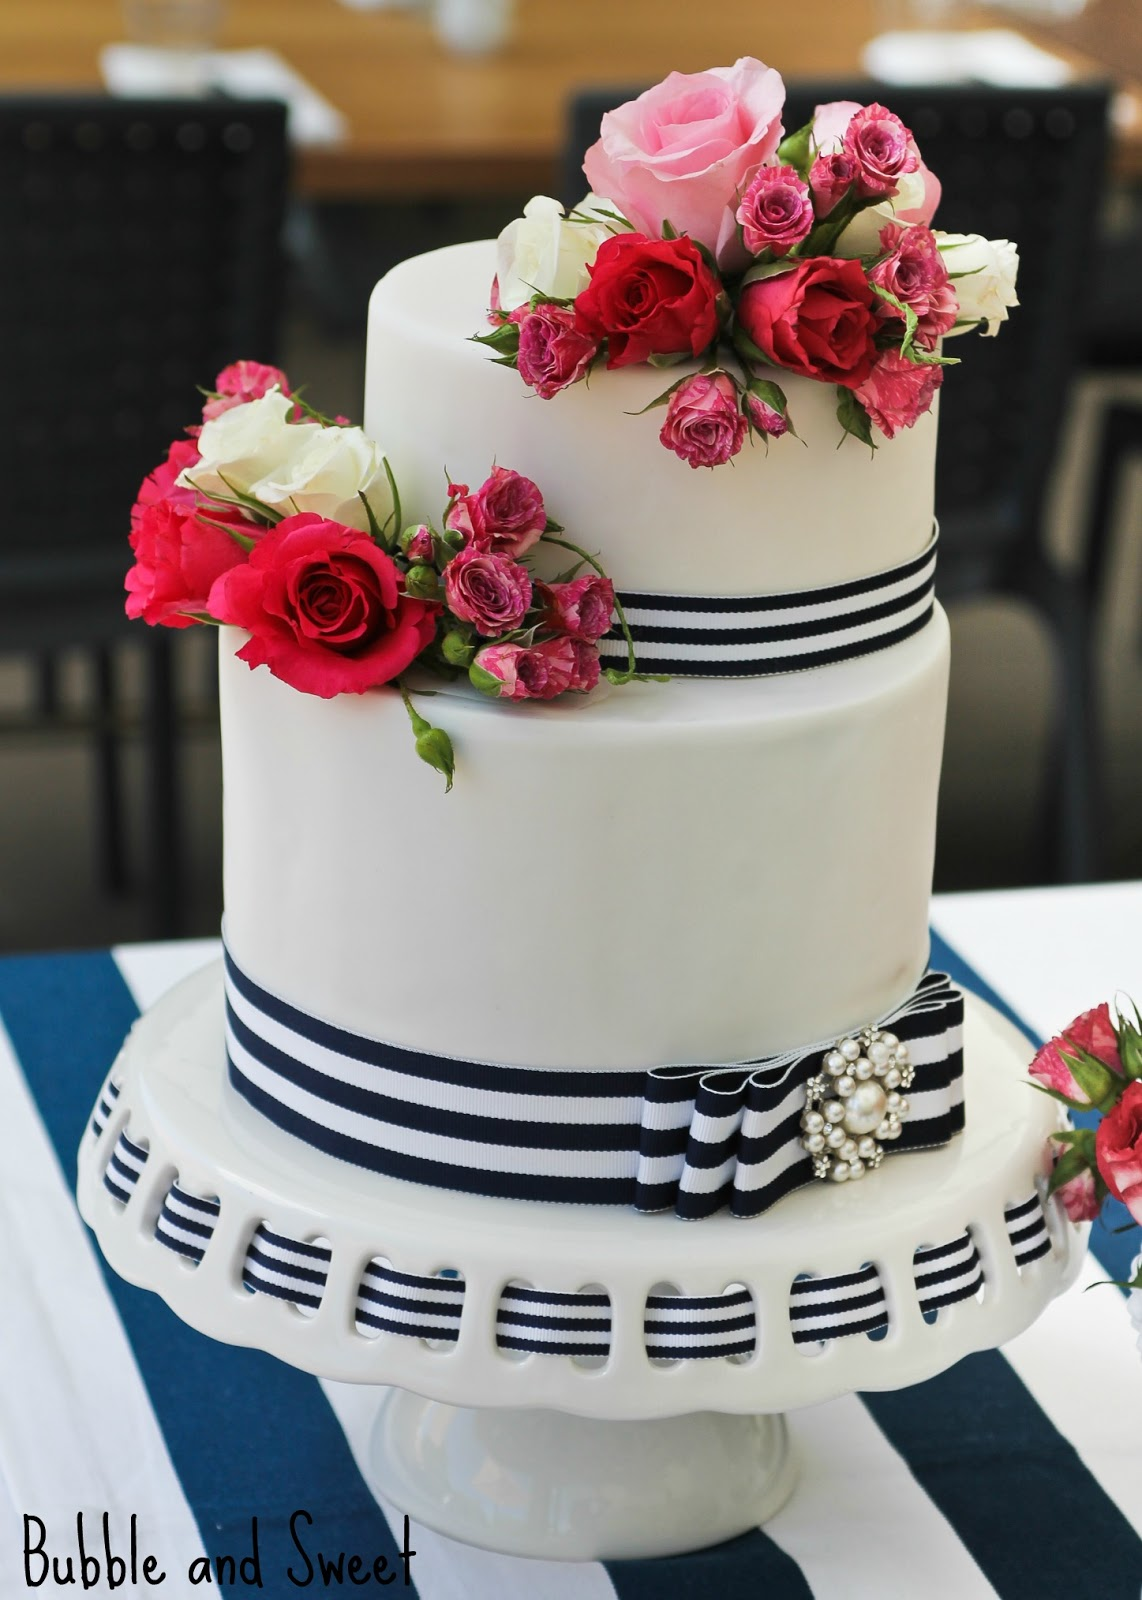 Bubble And Sweet Navy Stripe And Pink Rose Cake And A Delightful